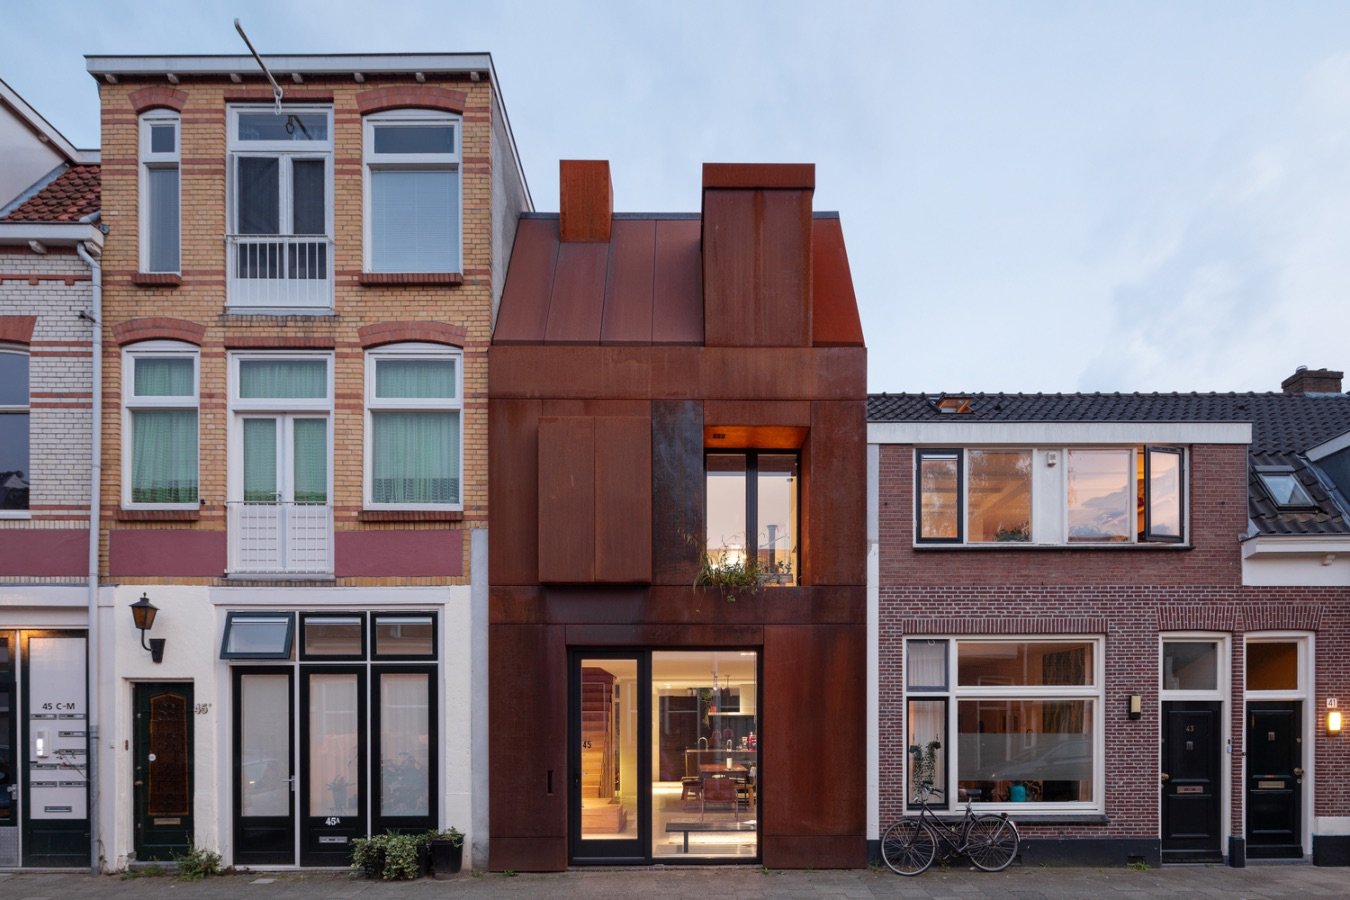 Steel Craft House: the stylistic features of a working-class house, revamped